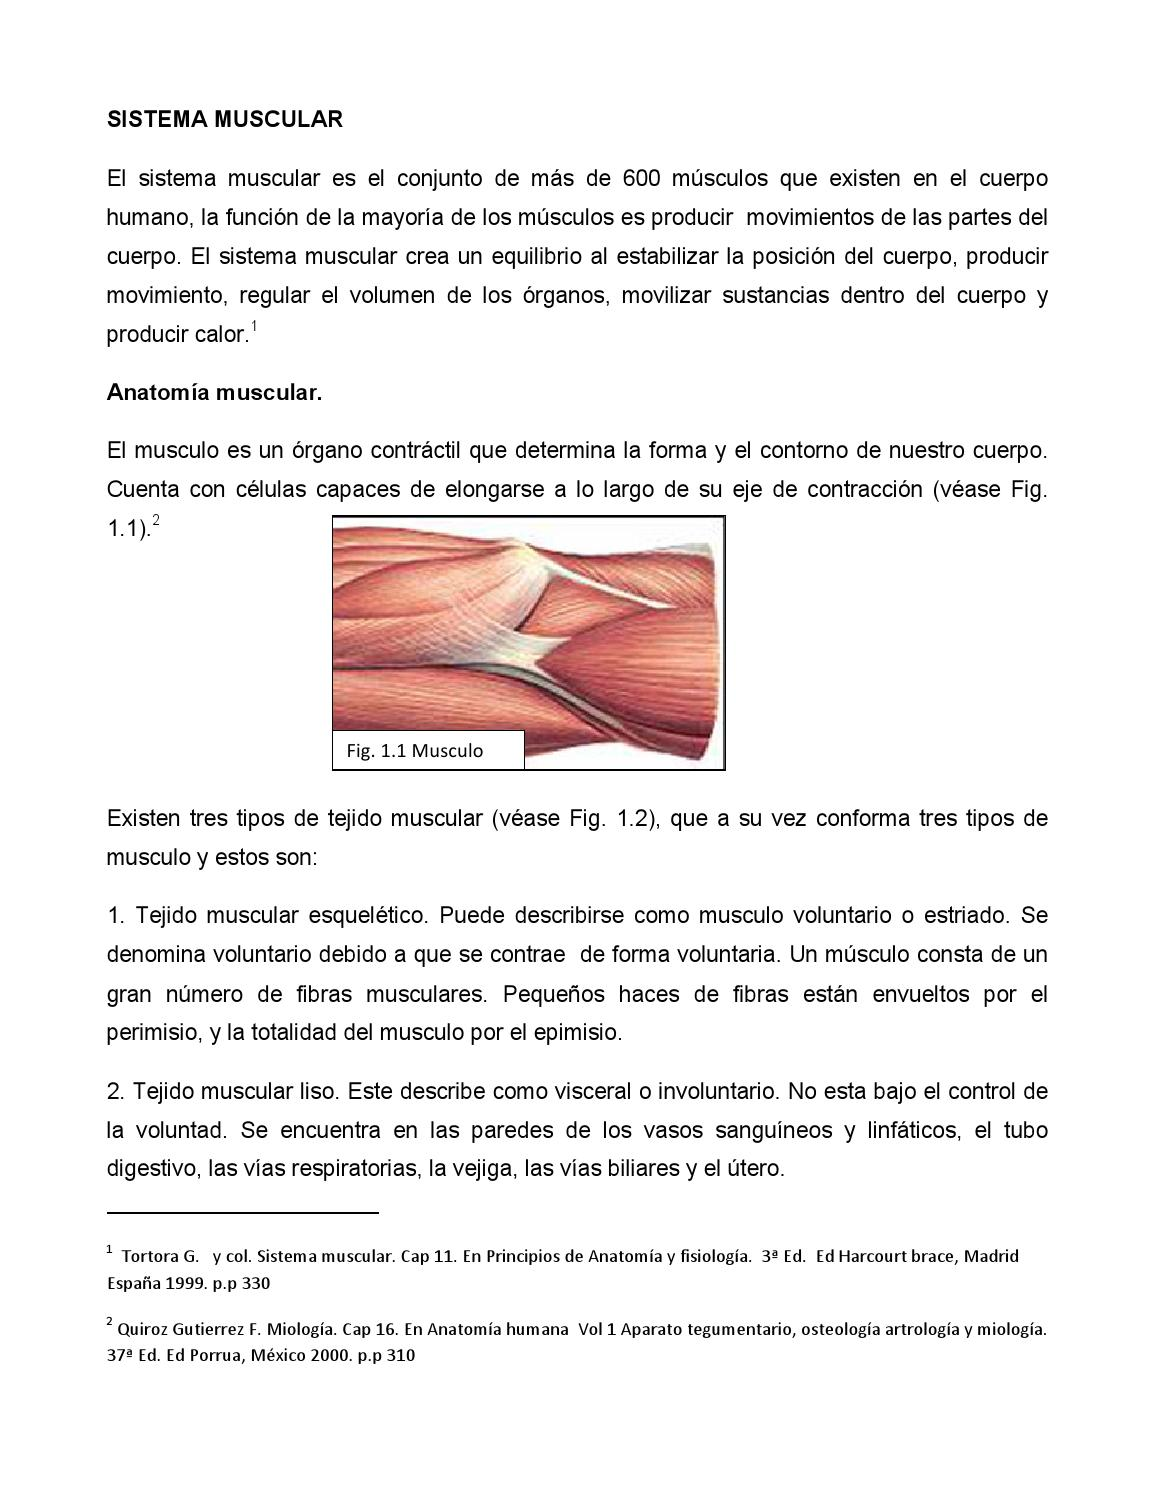 Sistema muscular by nathaly garcia - issuu